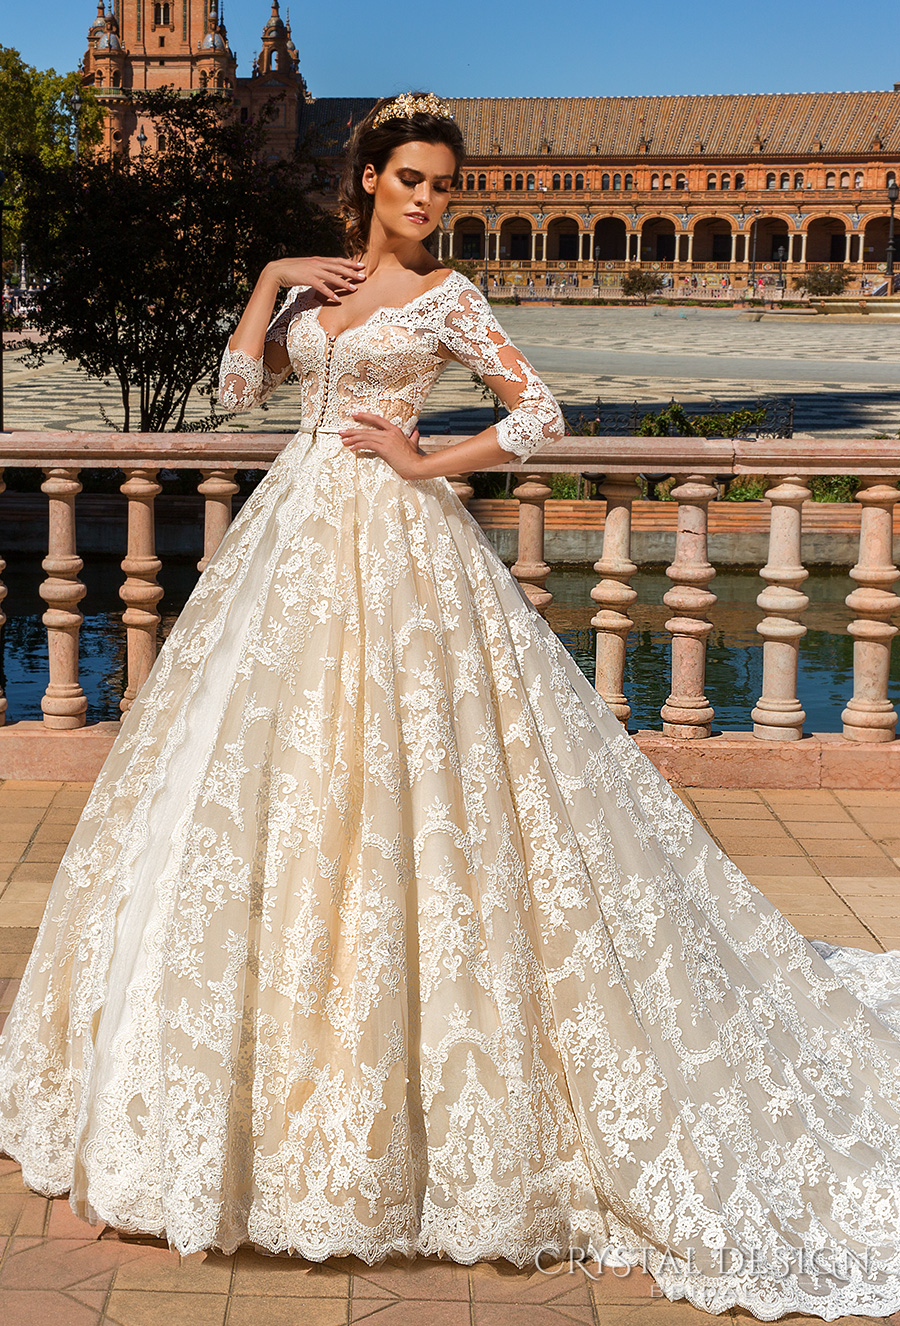 crystal design 2017 bridal three quarter sleeves v neck full embellishment ivory color princess ball gown a  line wedding dress monarch train (amelia) mv